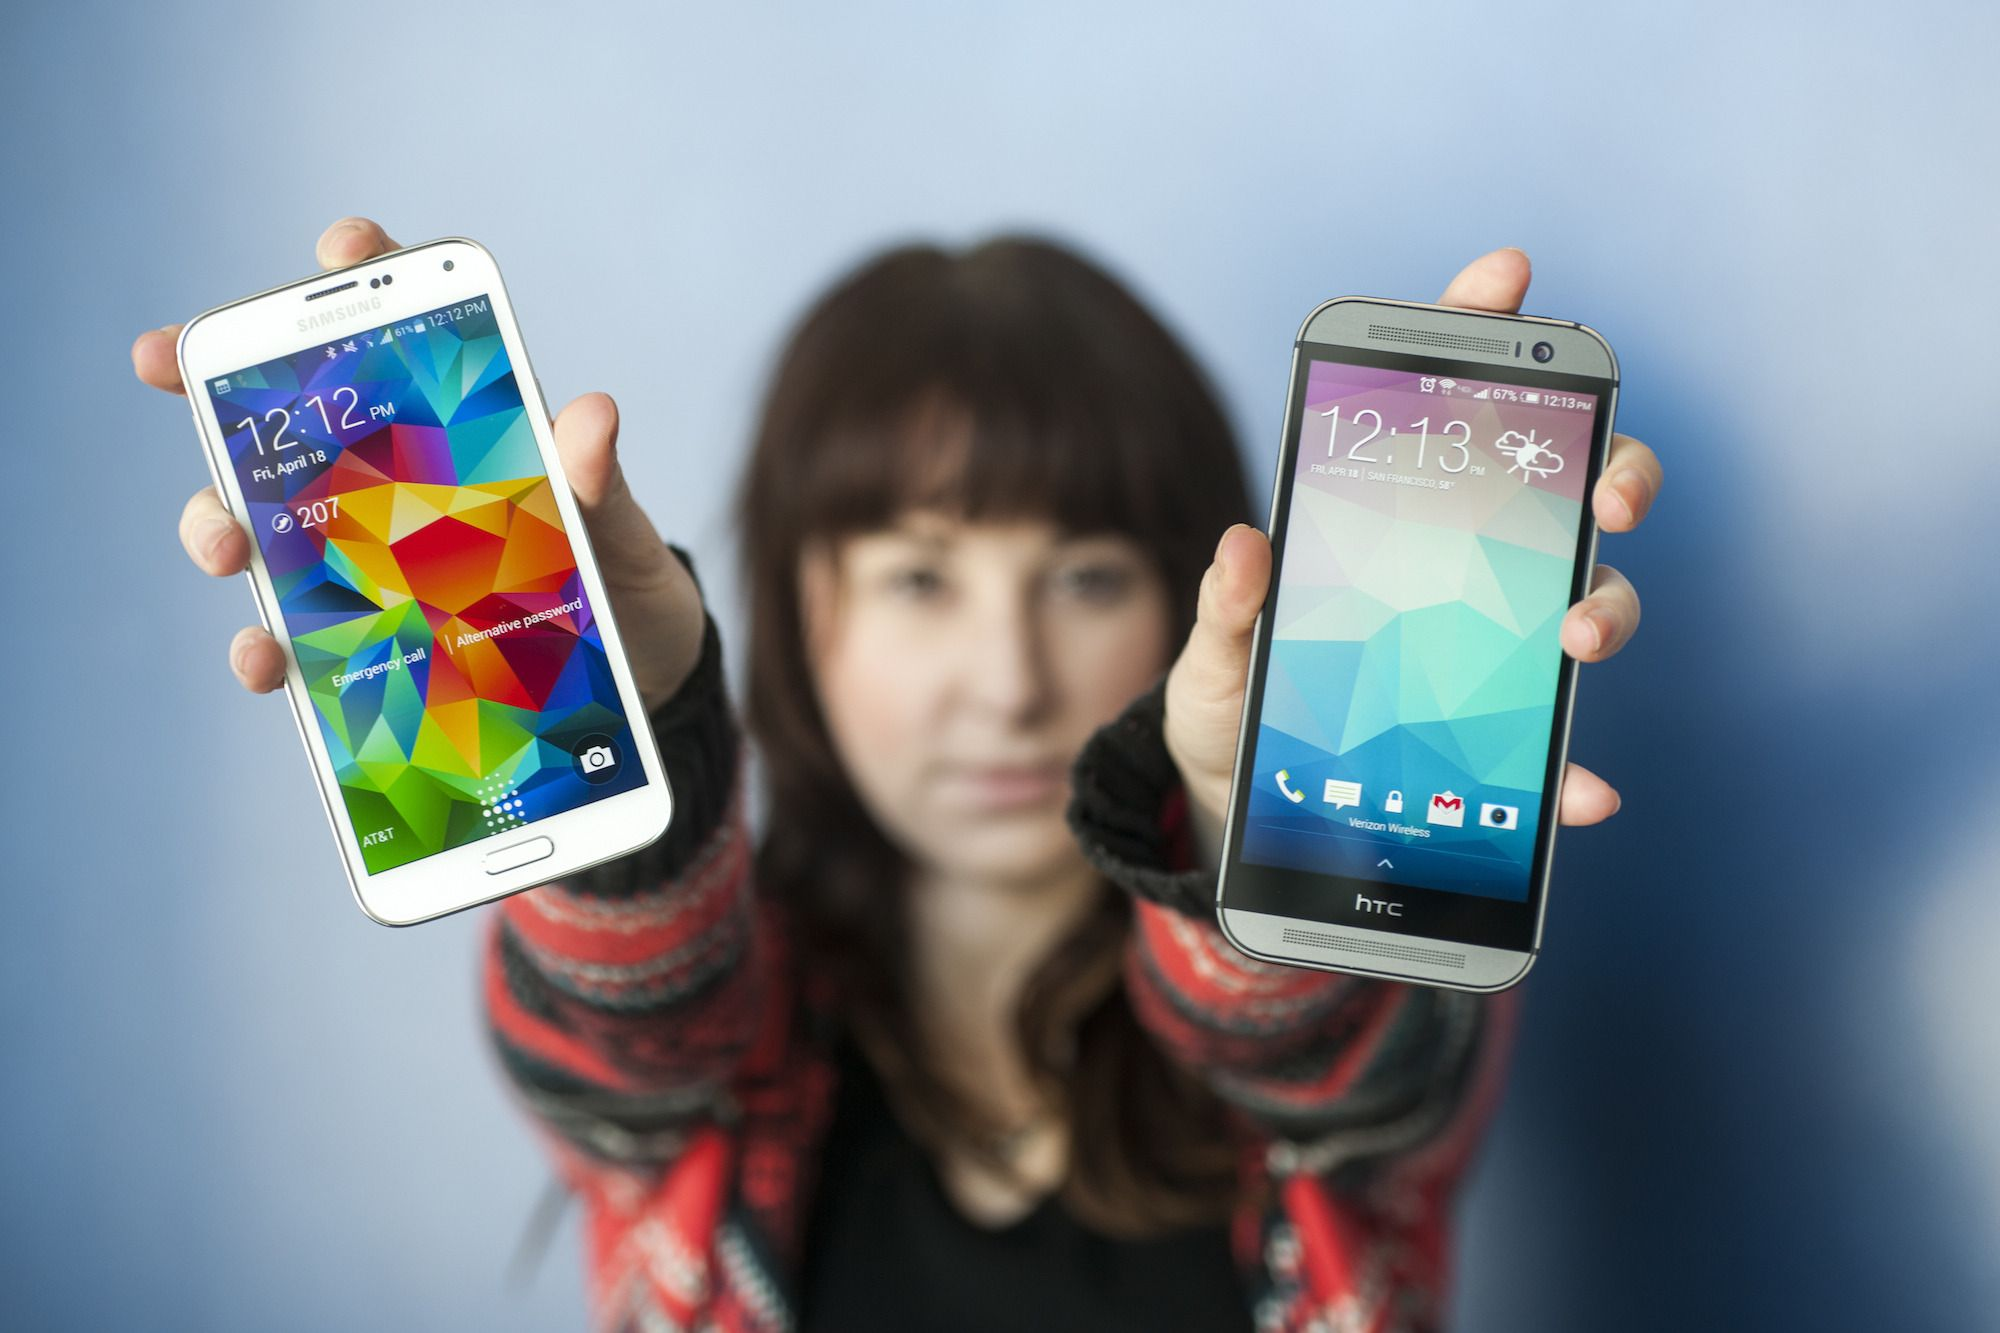 The first things you should do with that new Android phone